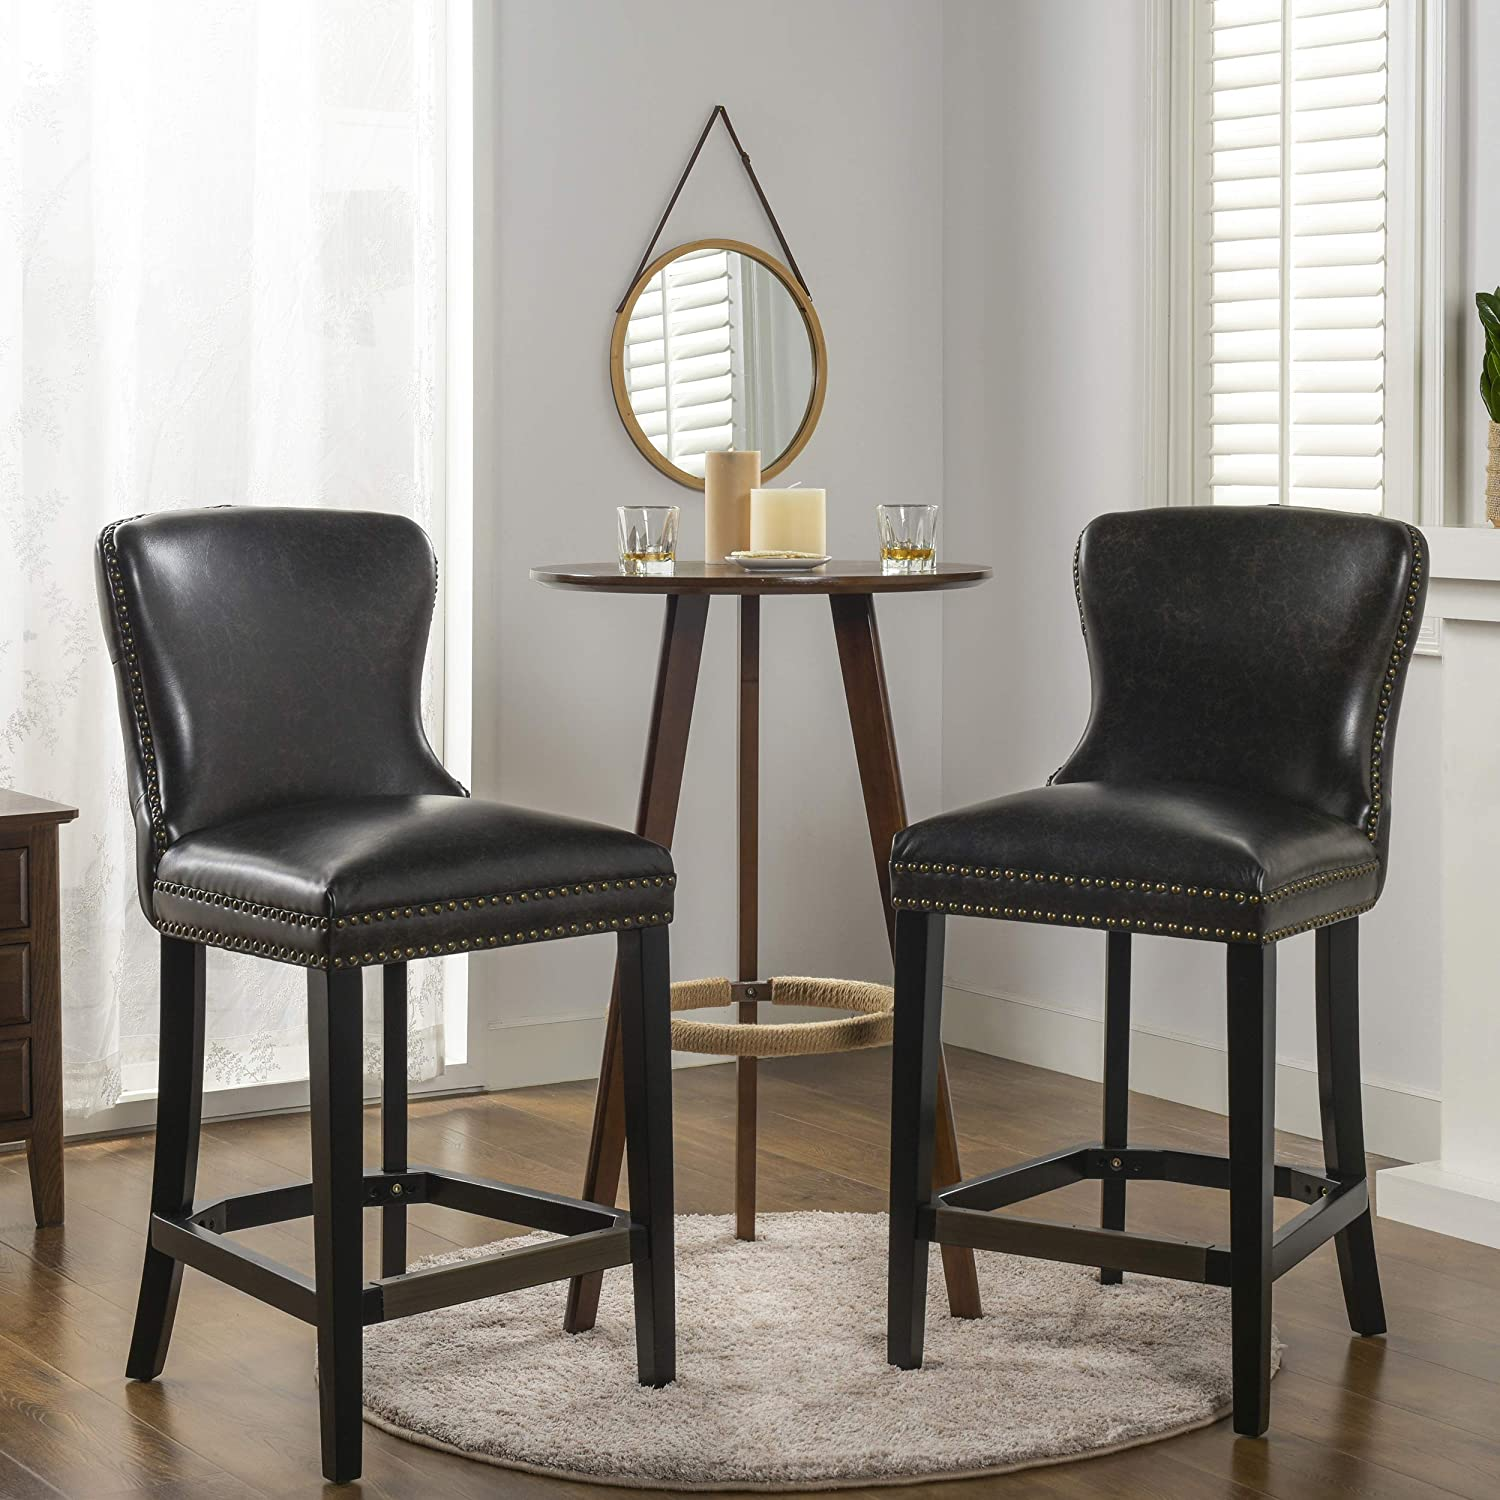 "Jennifer Taylor Home Solano 26"" Leather Bar Stool (Set of 2), Vintage Black"